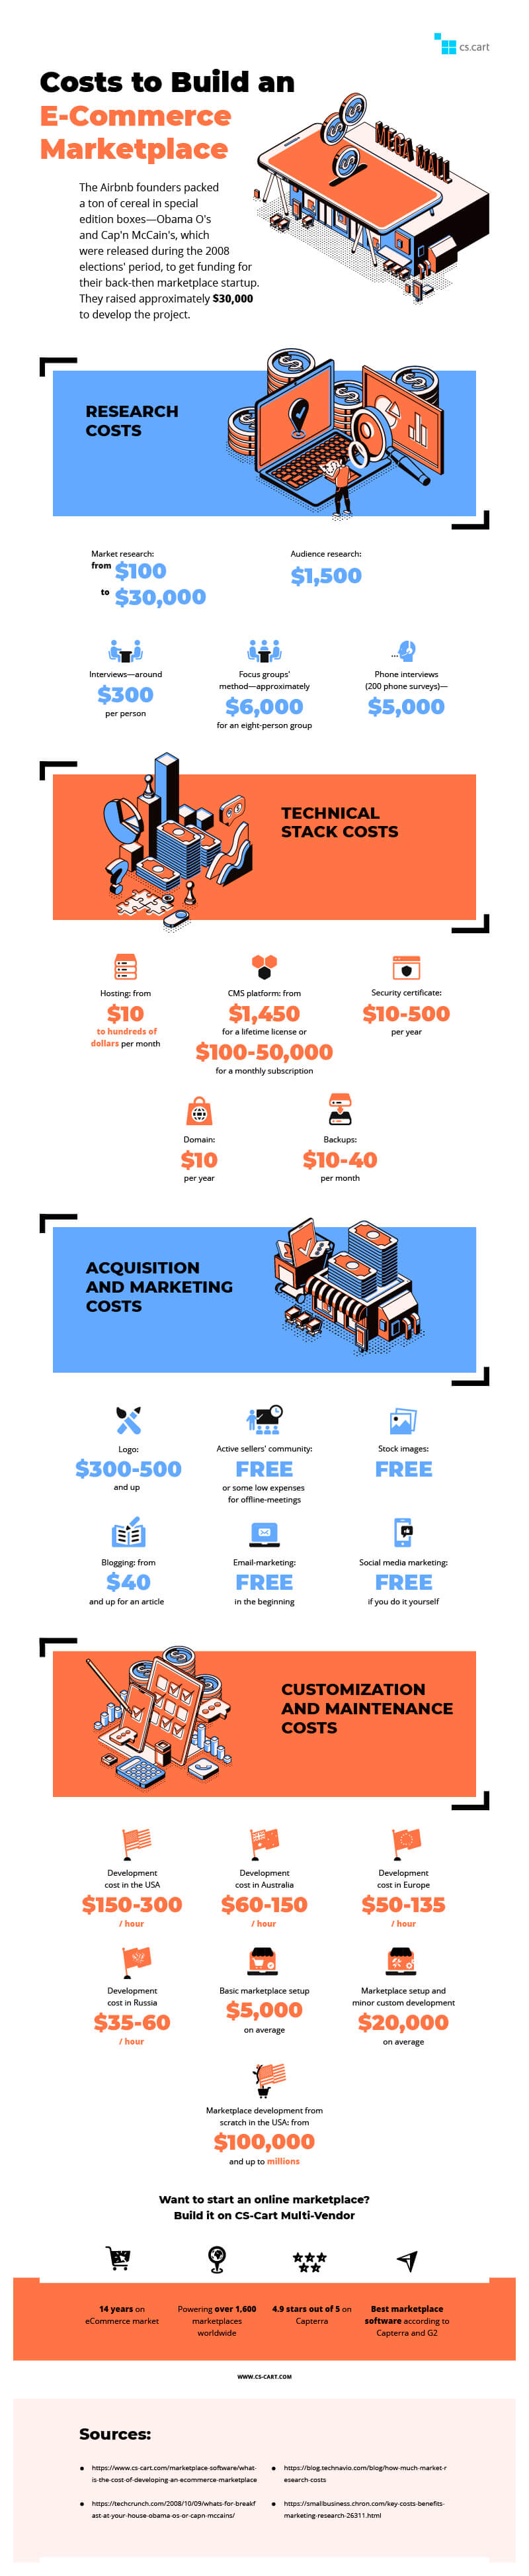 Costs-to-build-an-eCommerce-marketplace-infographic-plaza